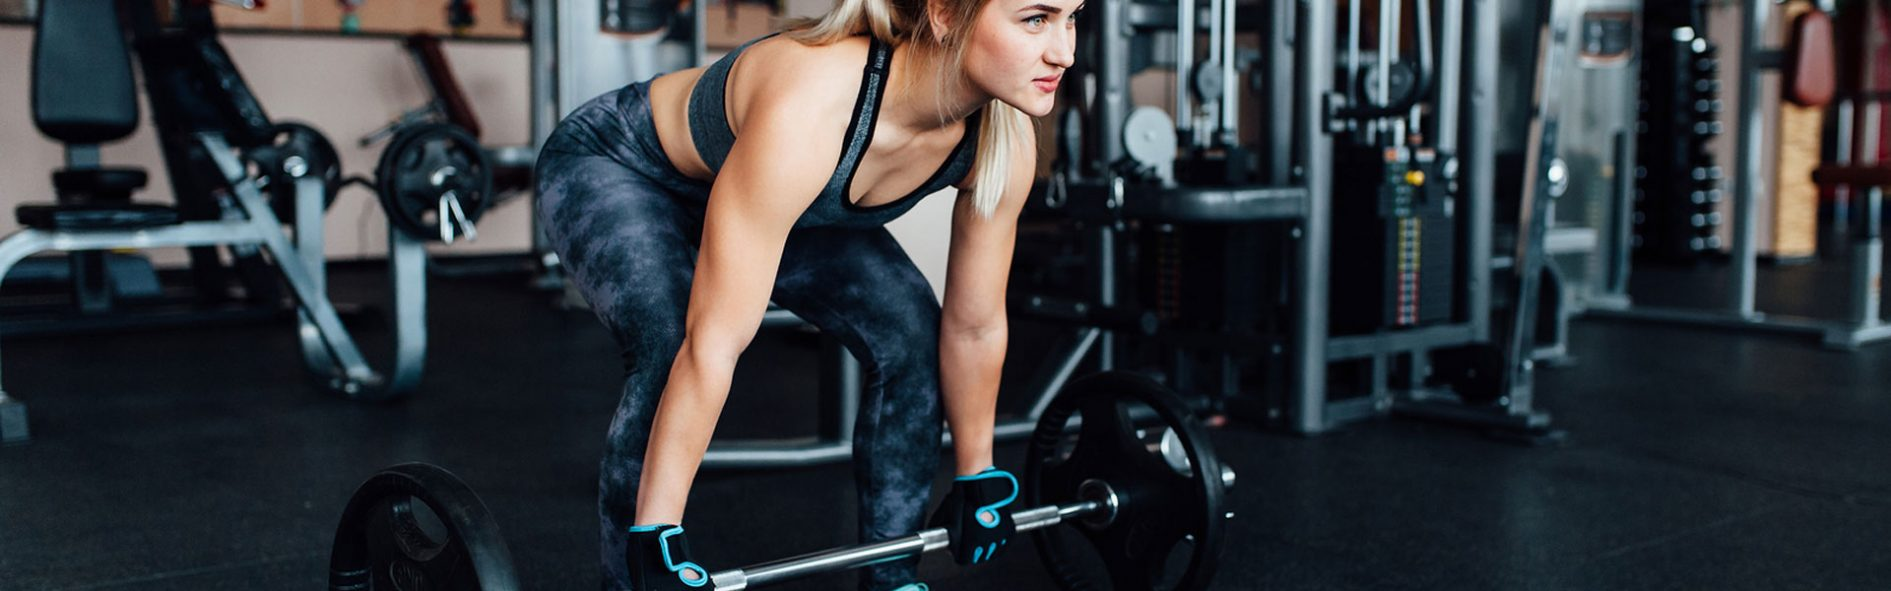 Lady Lifting Weight at Gym